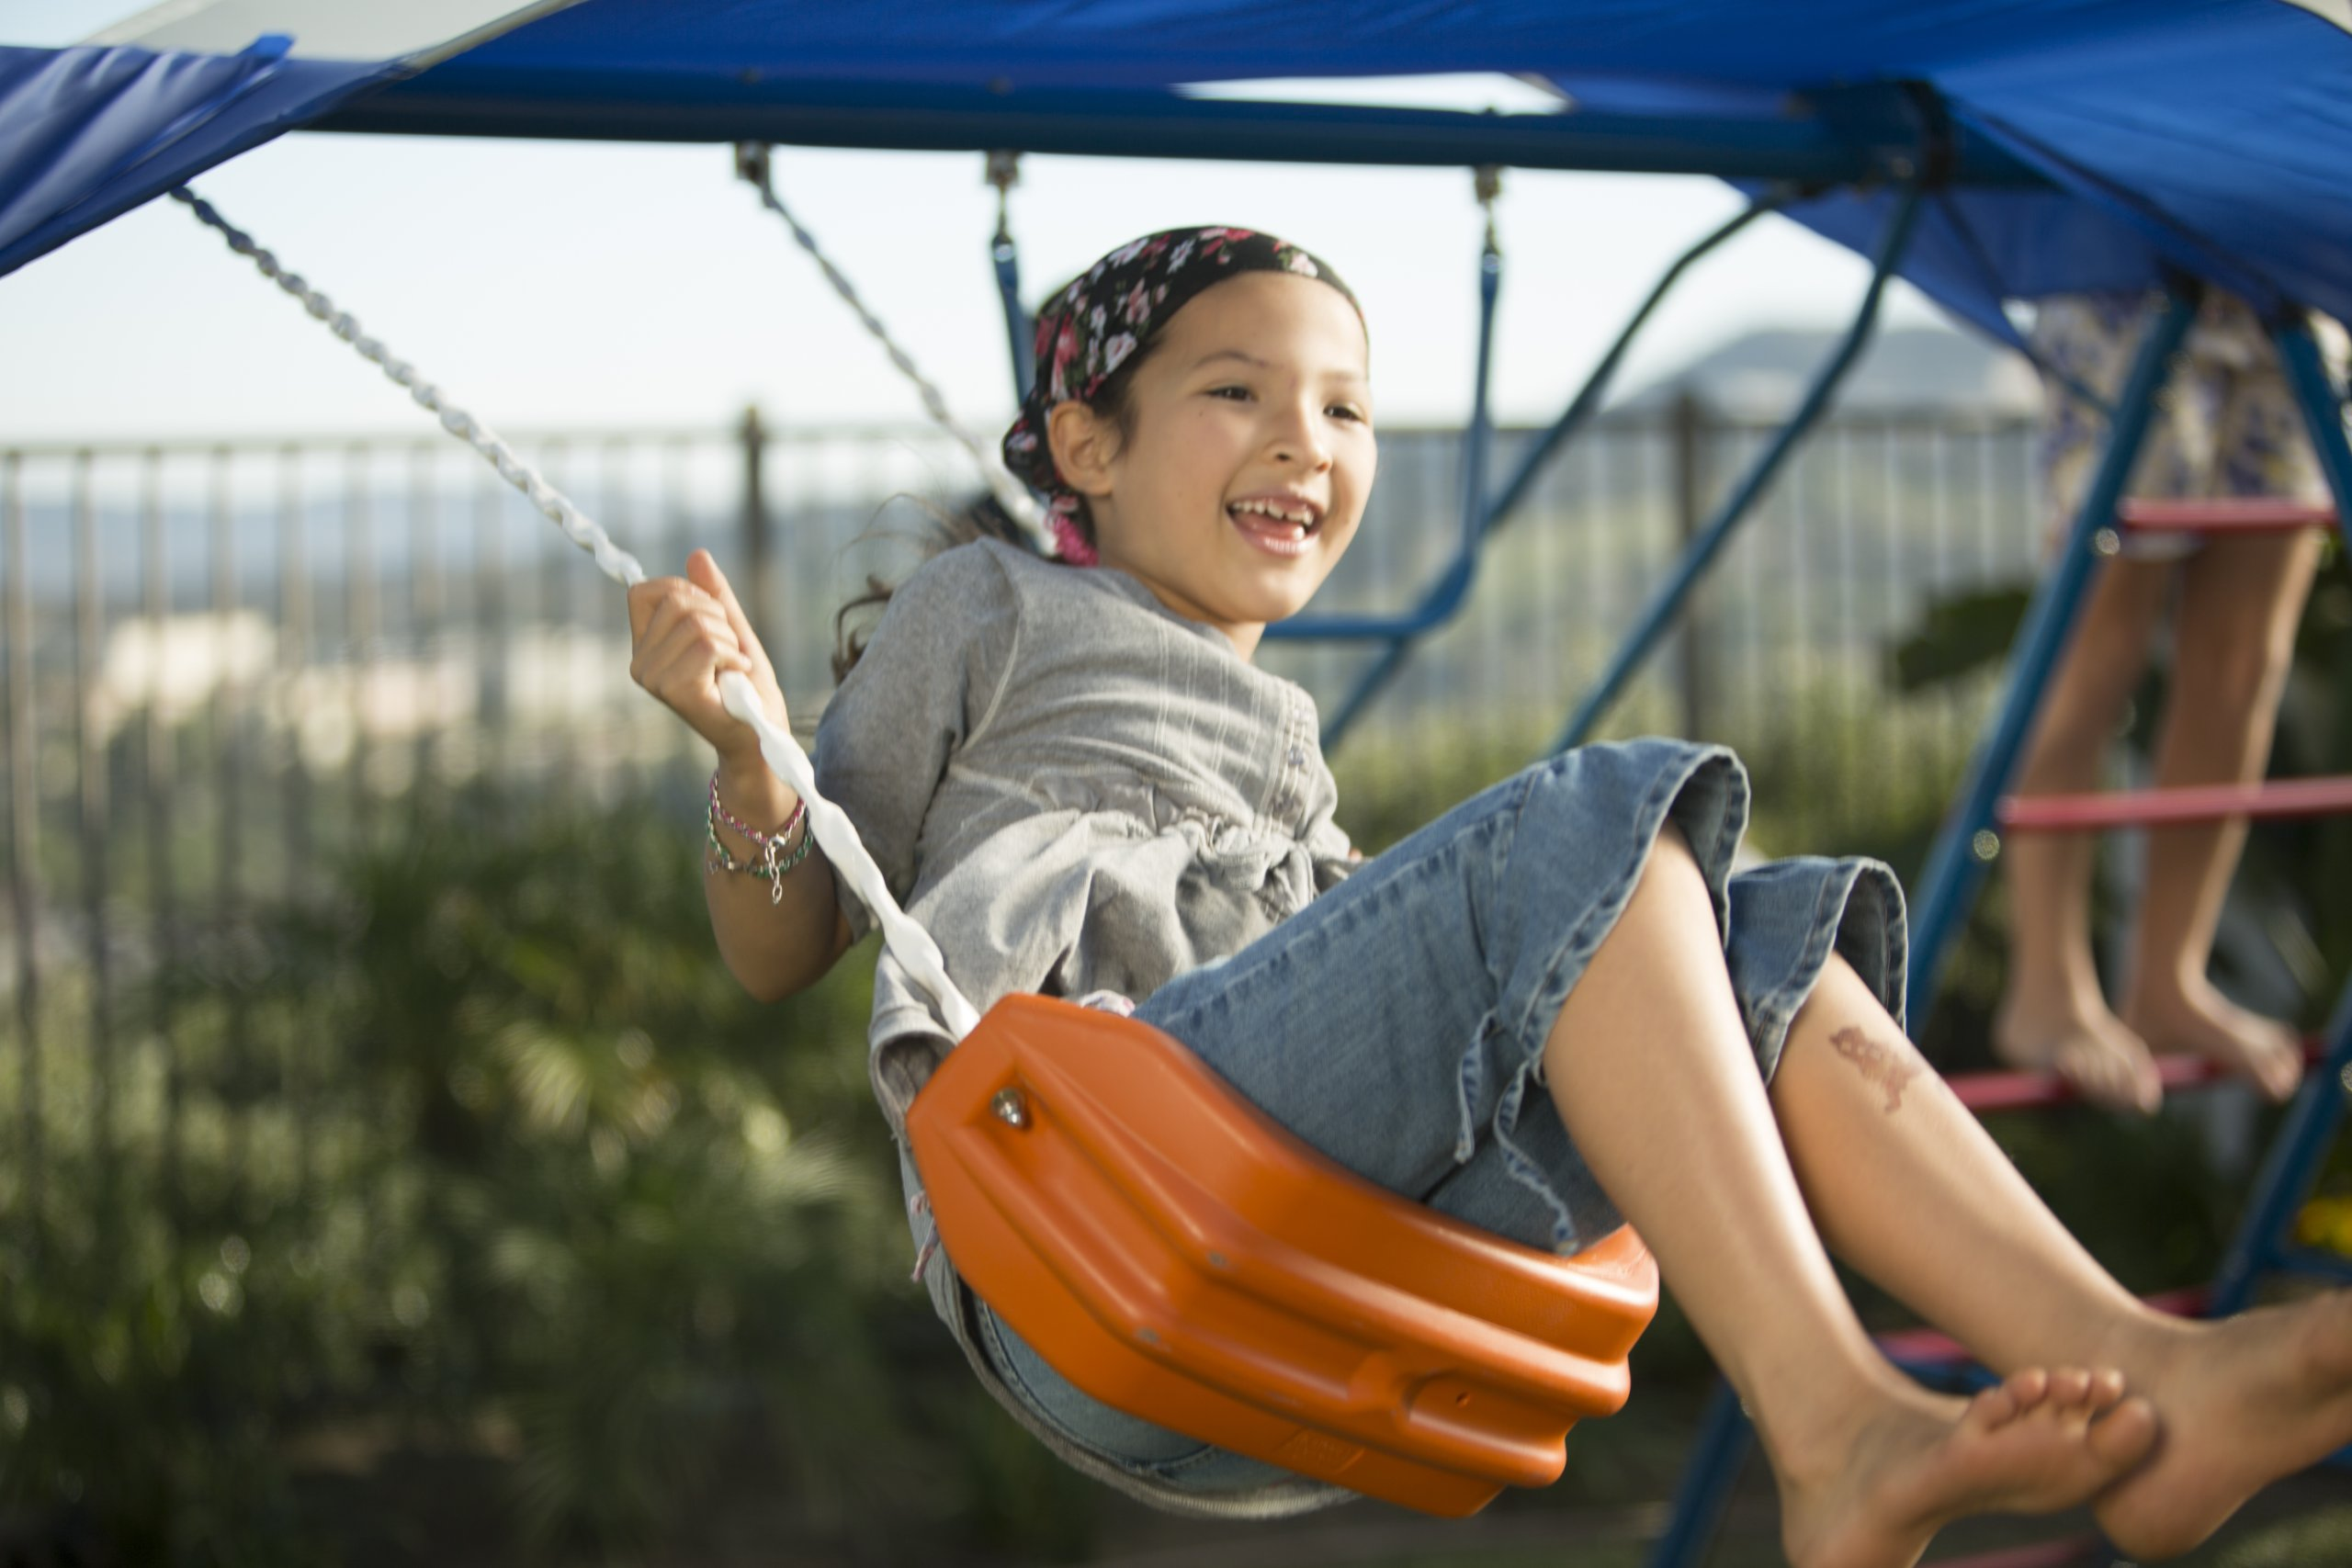 Ironkids Challenge 100 Metal Swing Set with Ladder Climber and UV Protective Sunshade by IRONKIDS (Image #5)